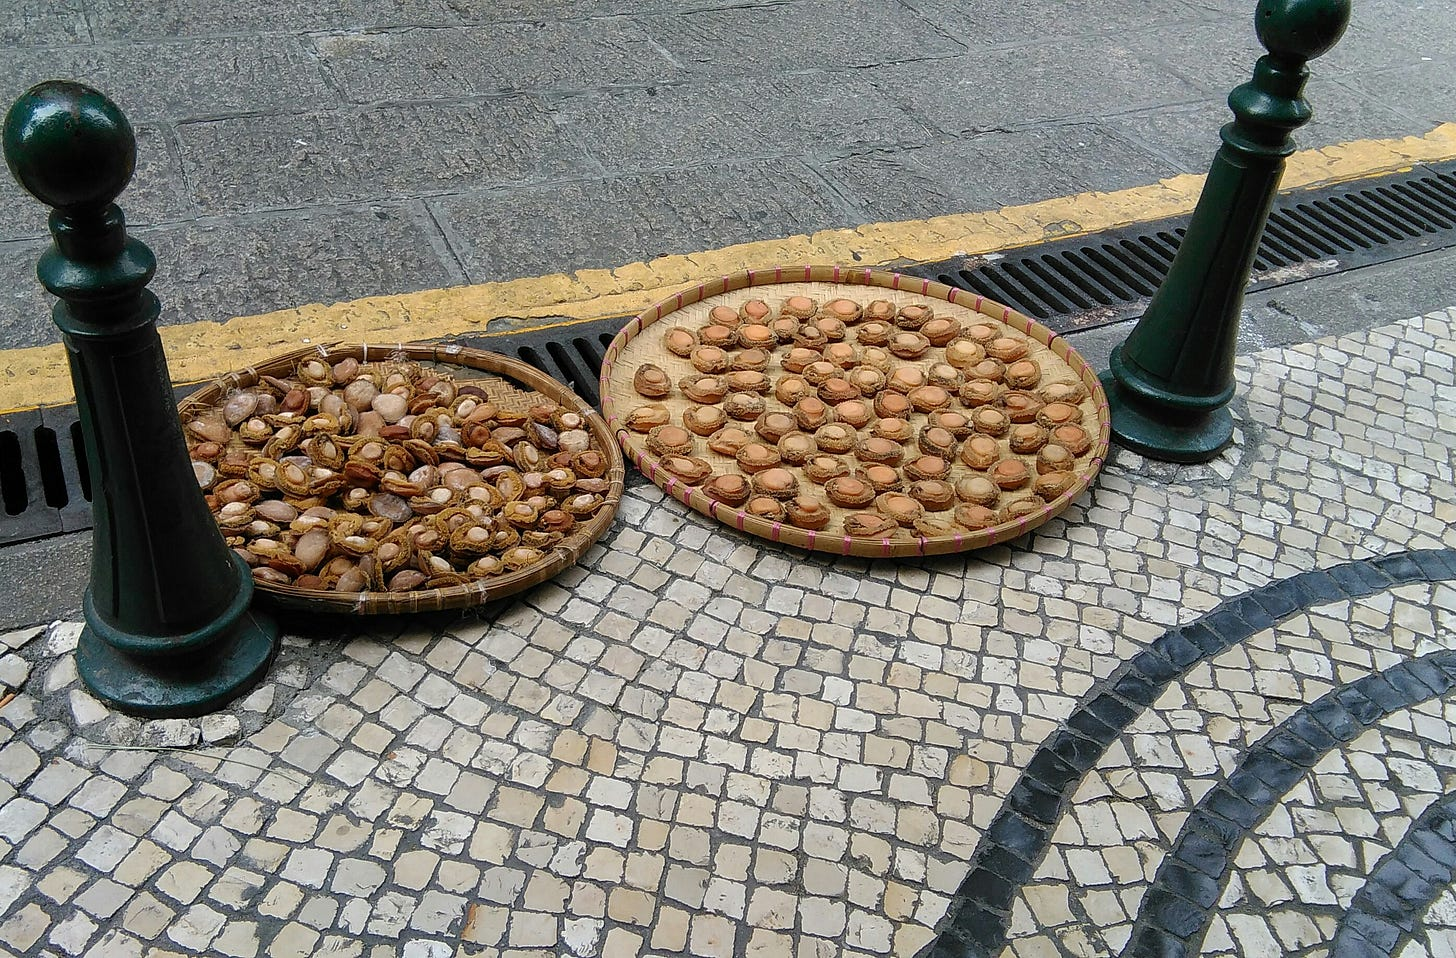 A shot of a pavement in Macau where abalone are drying on large round wicker baskets